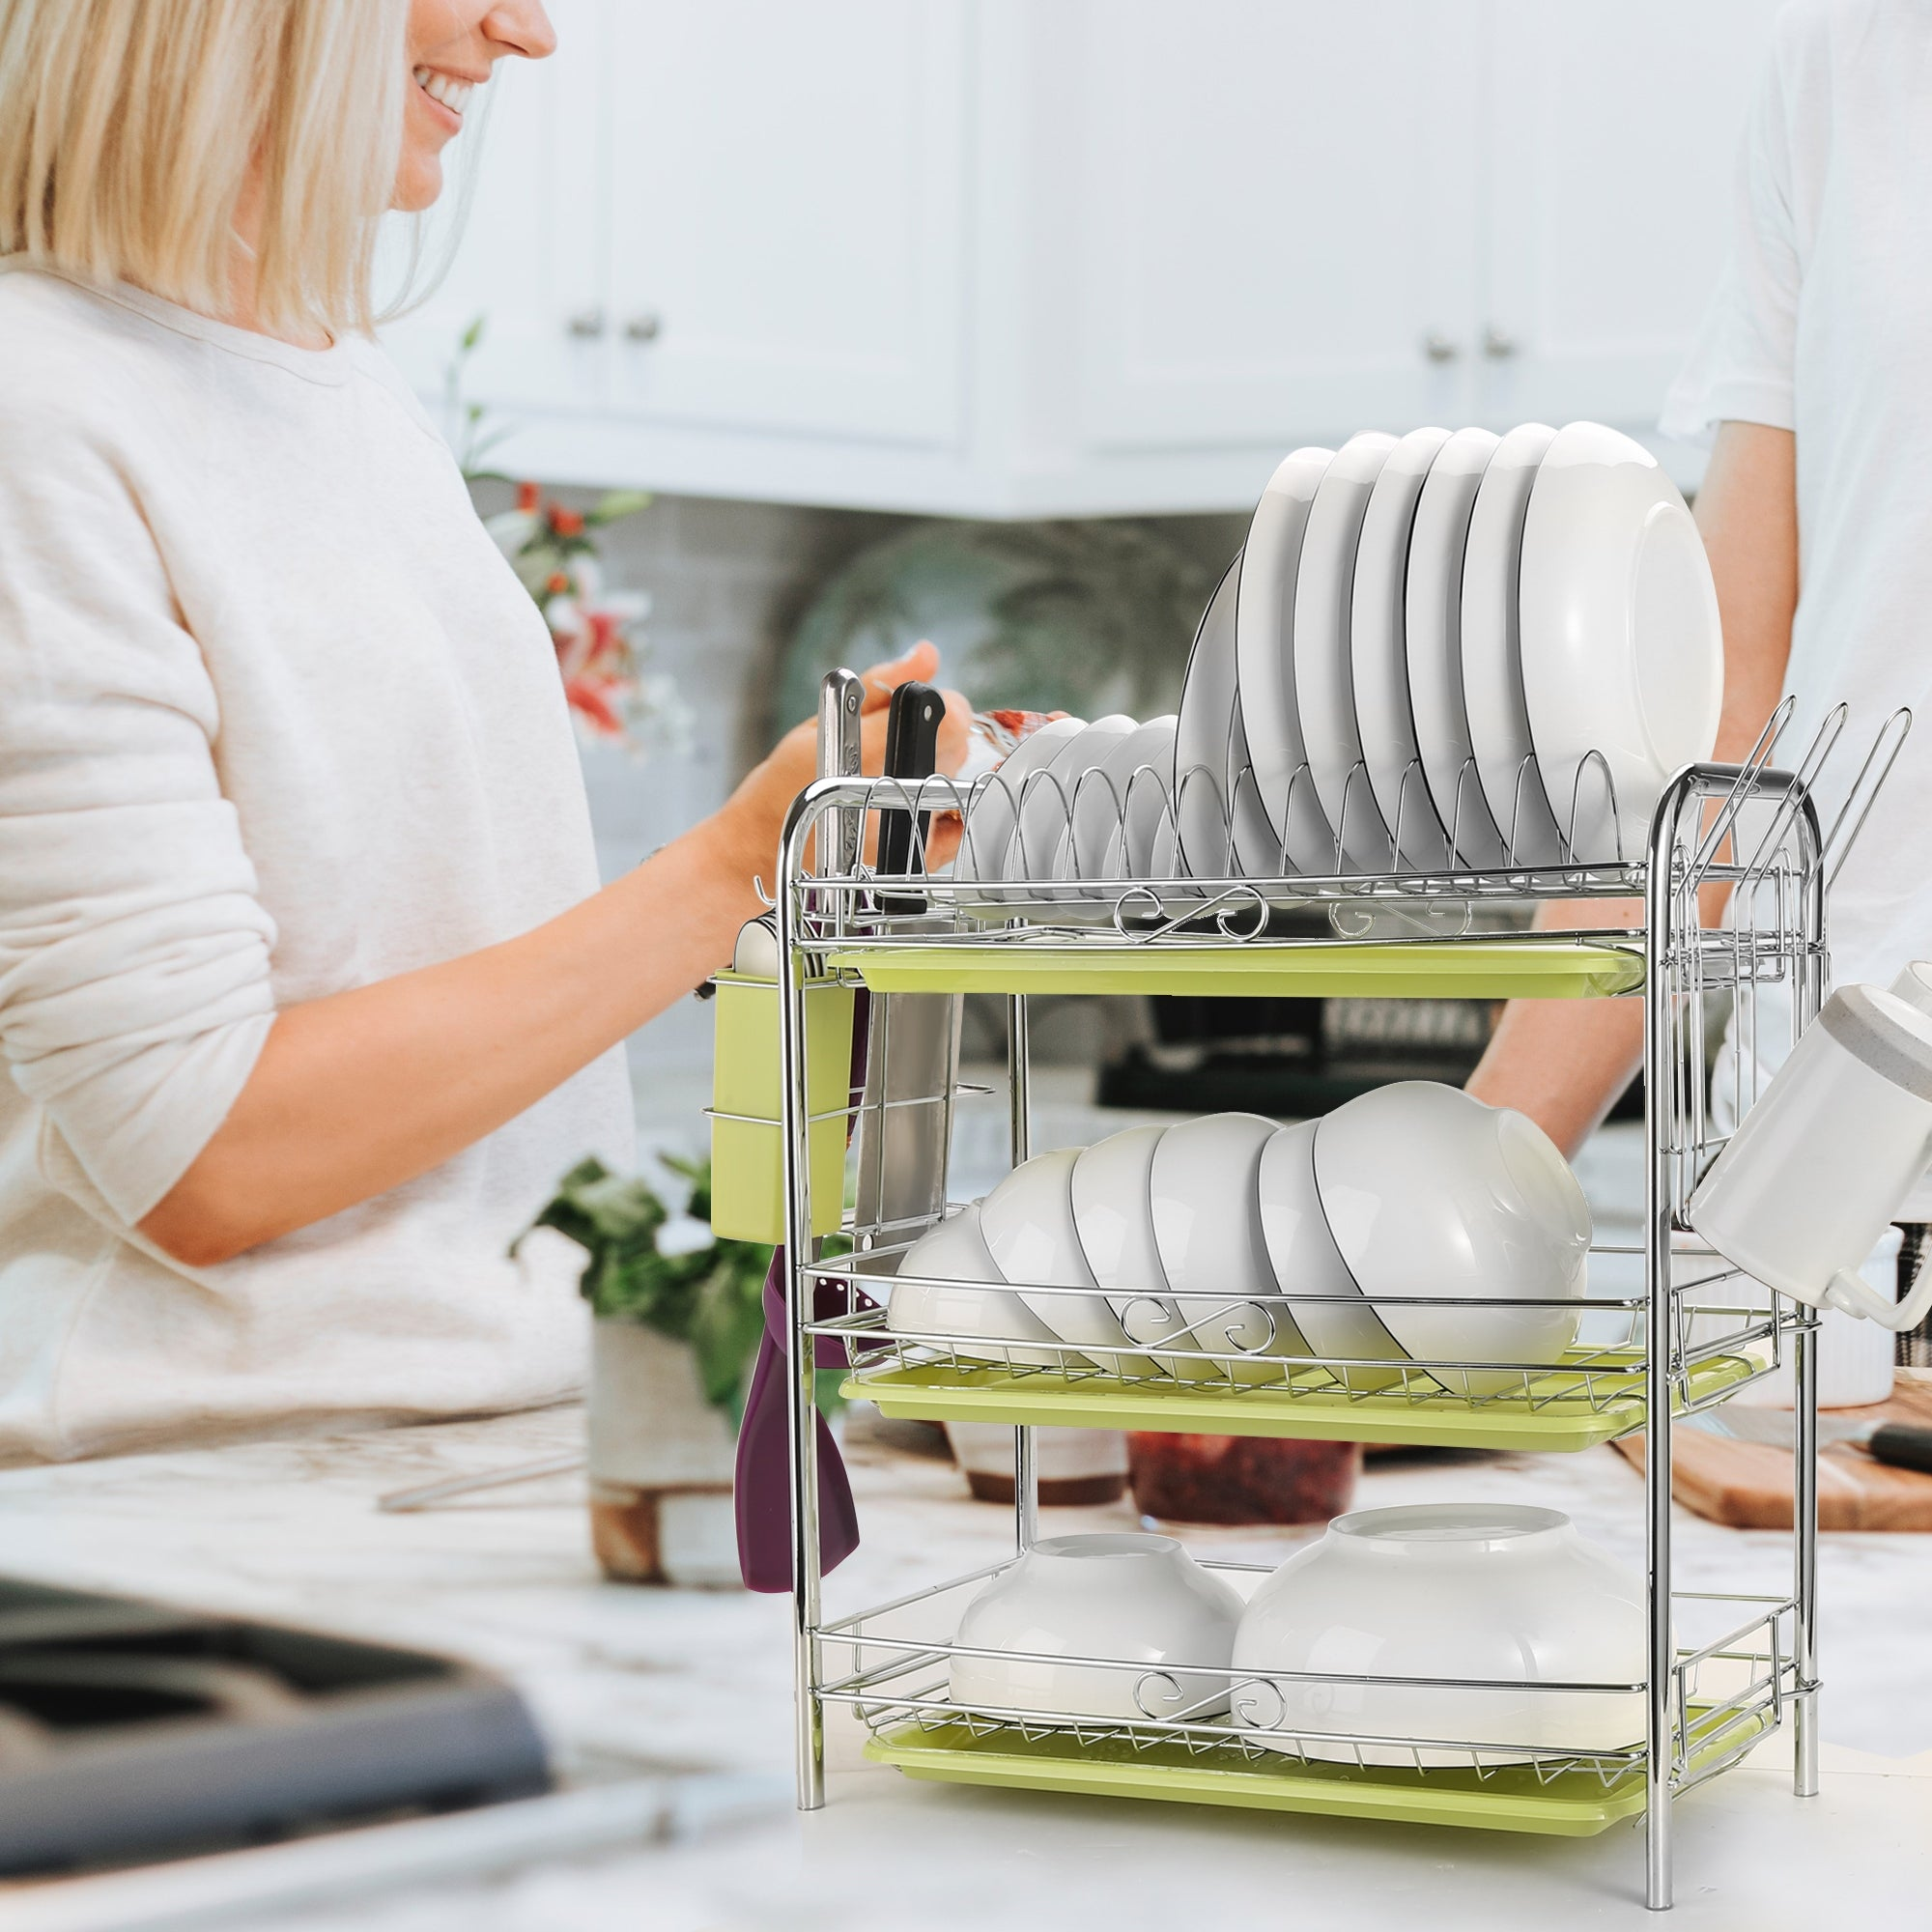 3 Level Chrome Dish Drying Rack Kitchen Dish Drainer Storage with Draining  Board and Cutlery Cup 22.04 x 9.05 x 18.50 IN